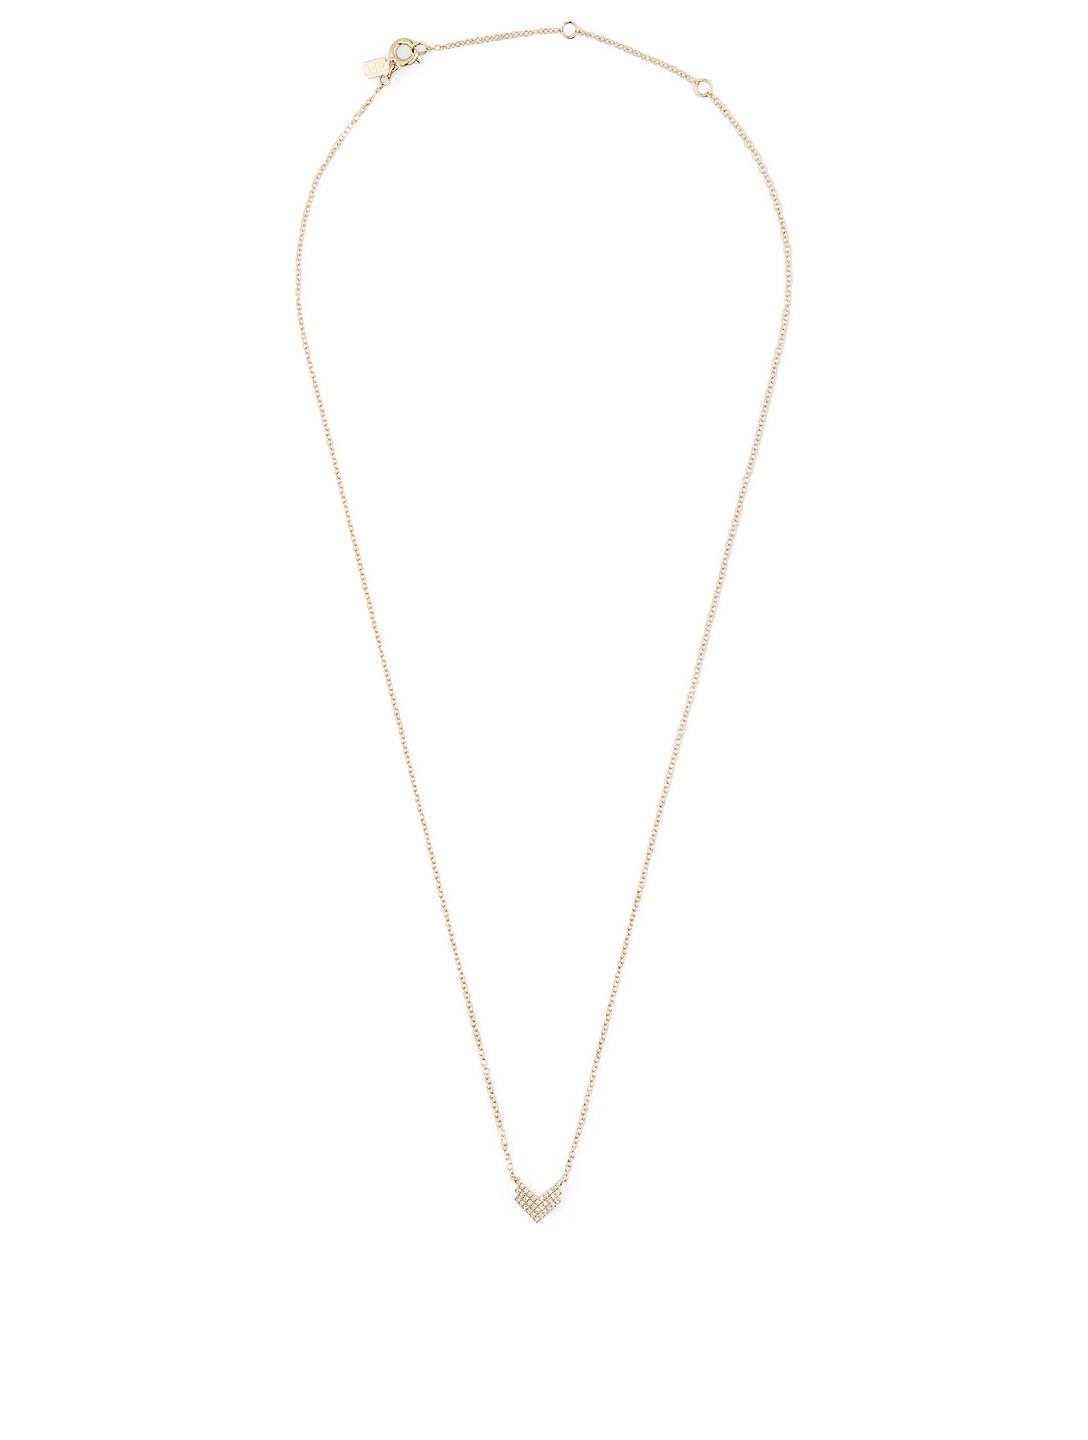 EF COLLECTION 14K Gold Shield Necklace With Diamonds Women's Metallic